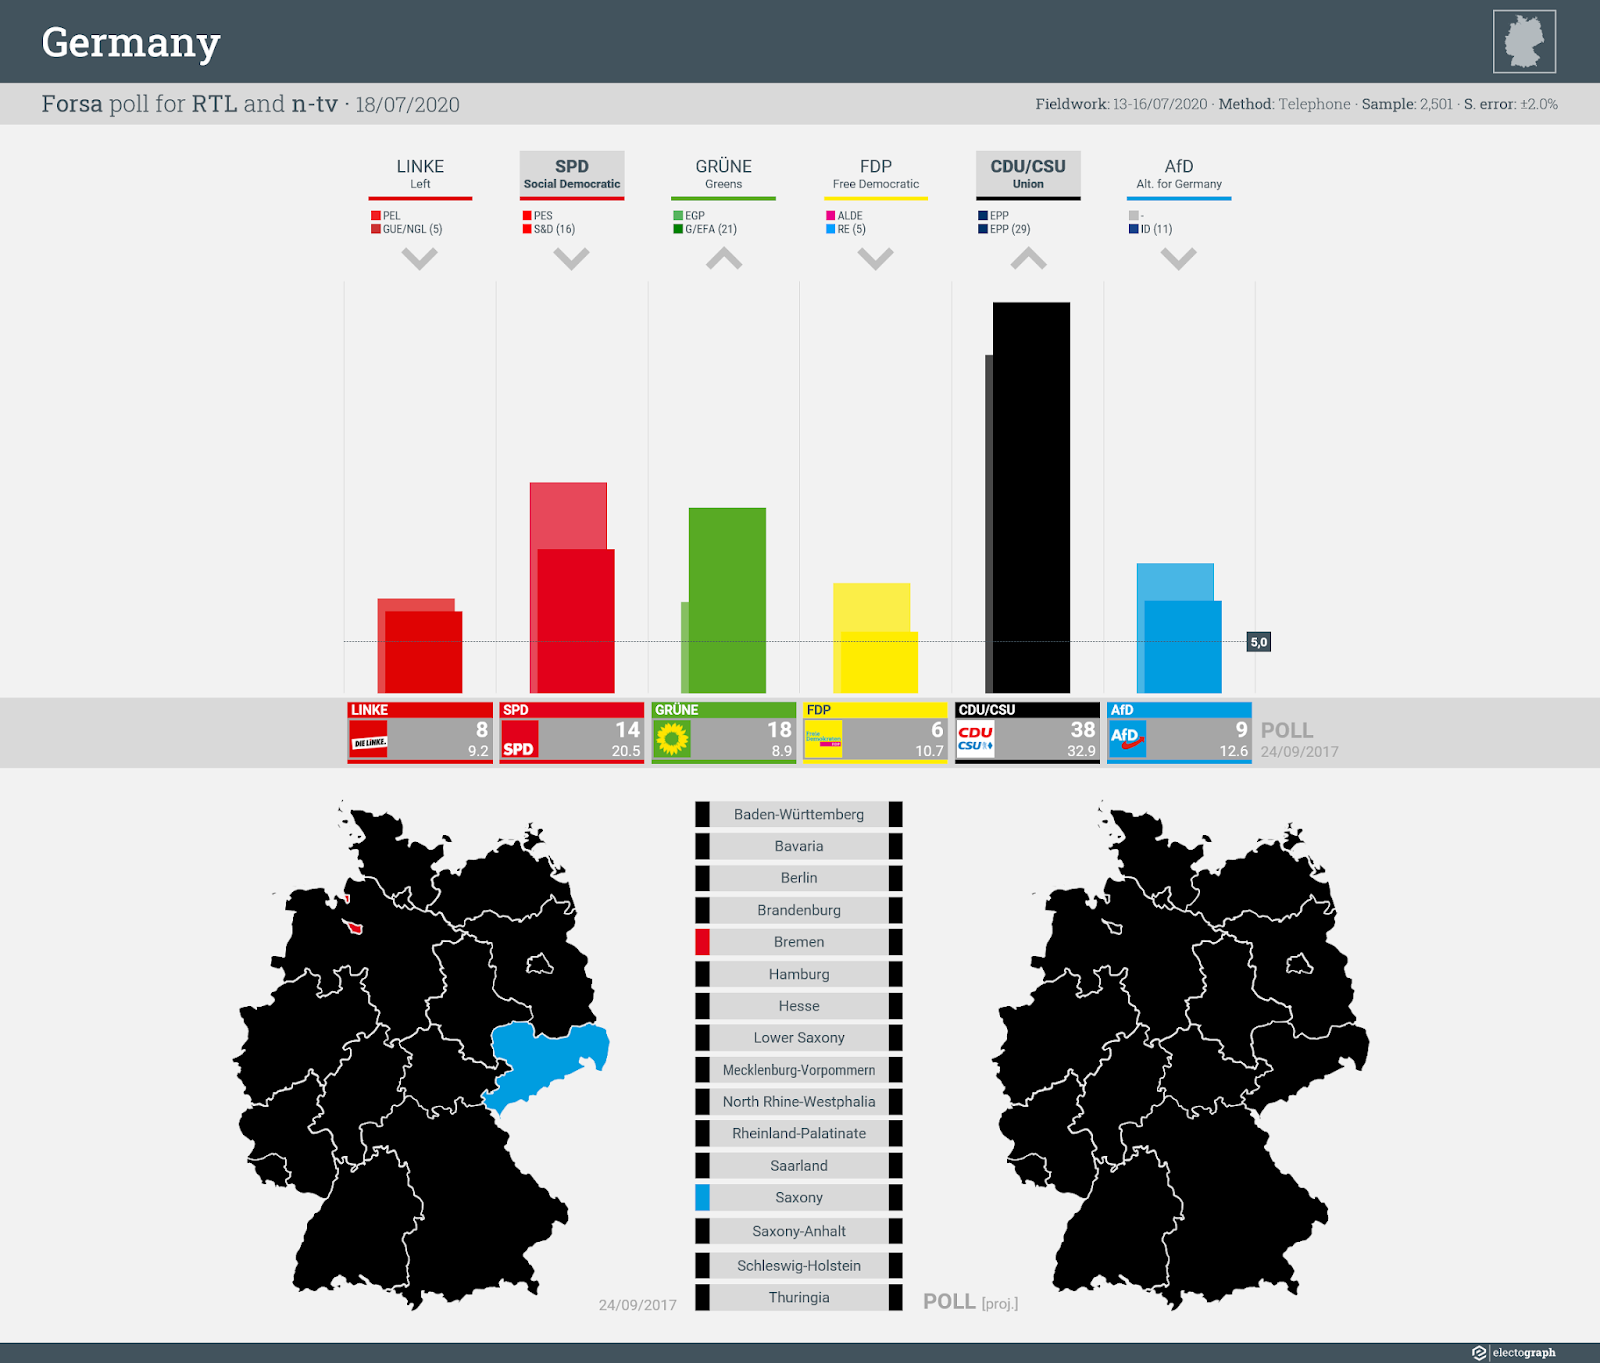 GERMANY: Forsa poll chart for RTL and n-tv, 18 July 2020